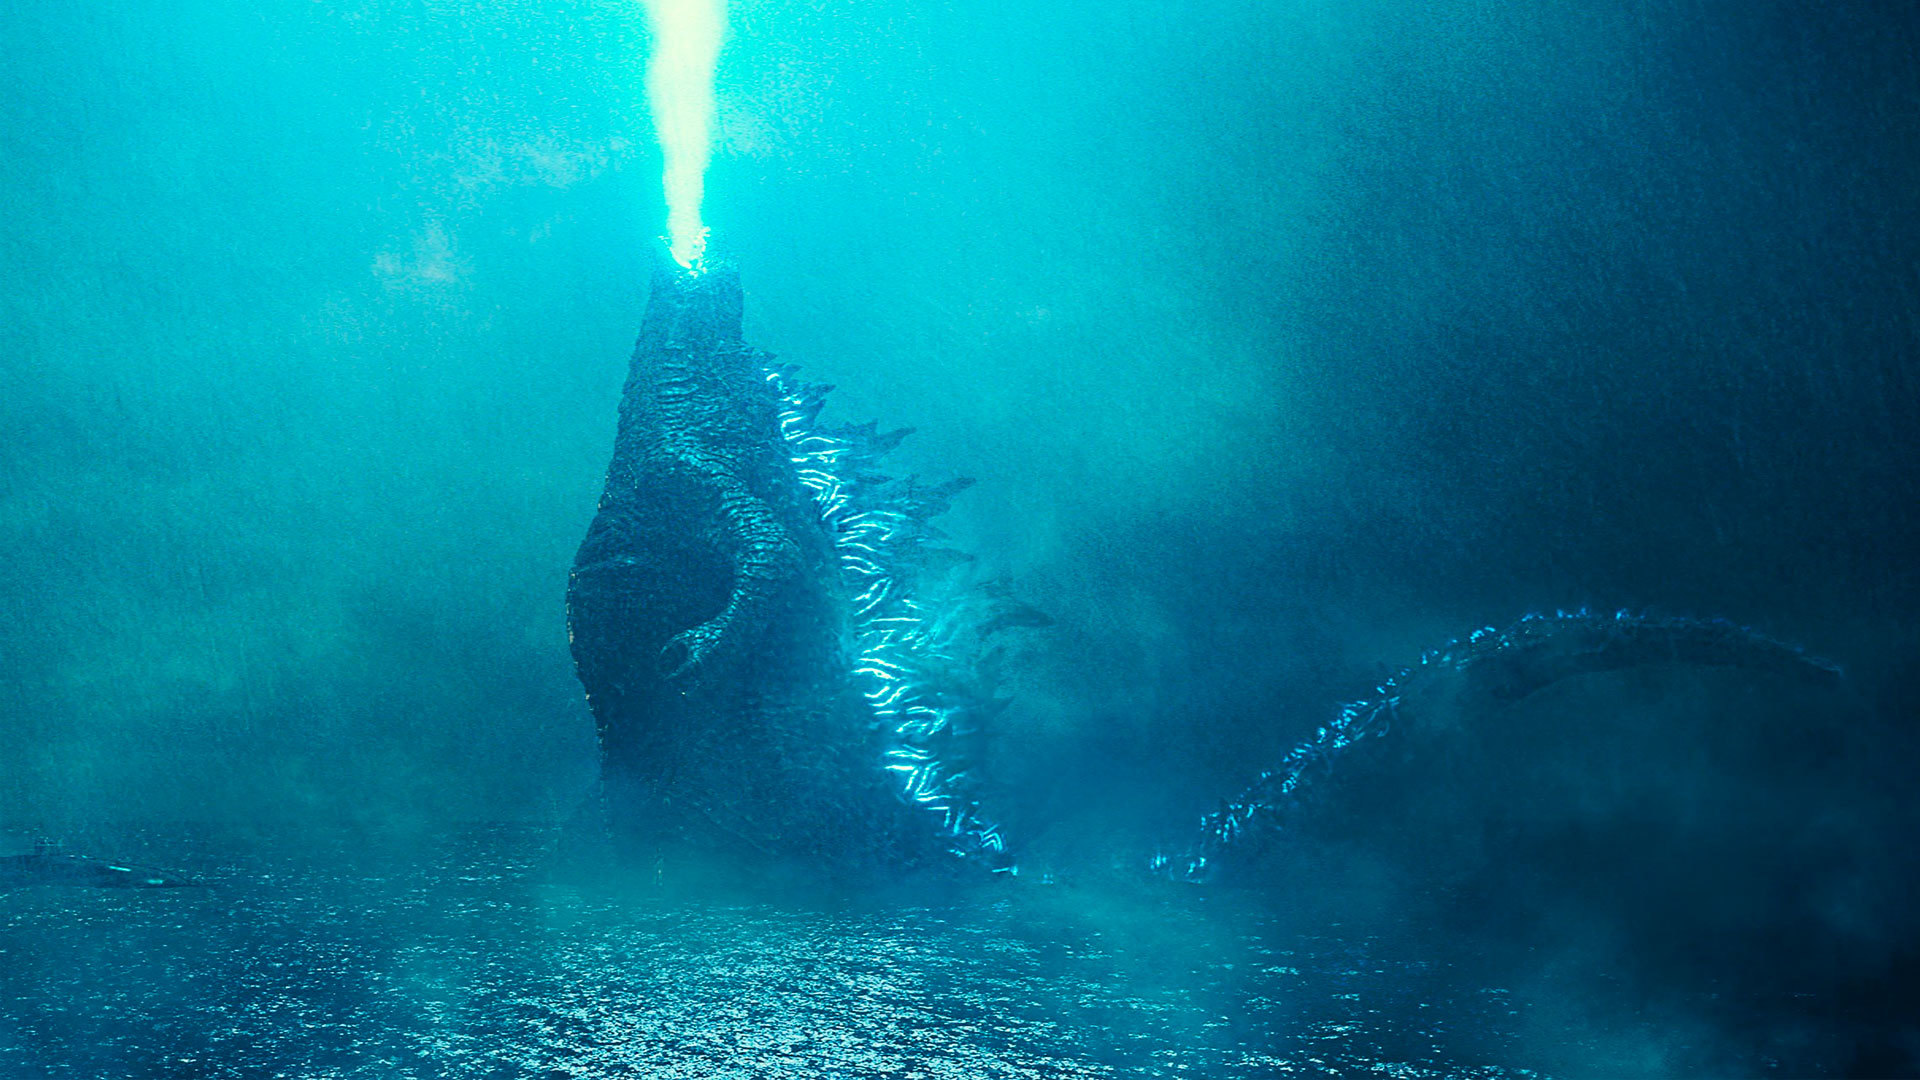 Larga vida al rey: Estas son las primeras reacciones de Godzilla: King of the Monsters